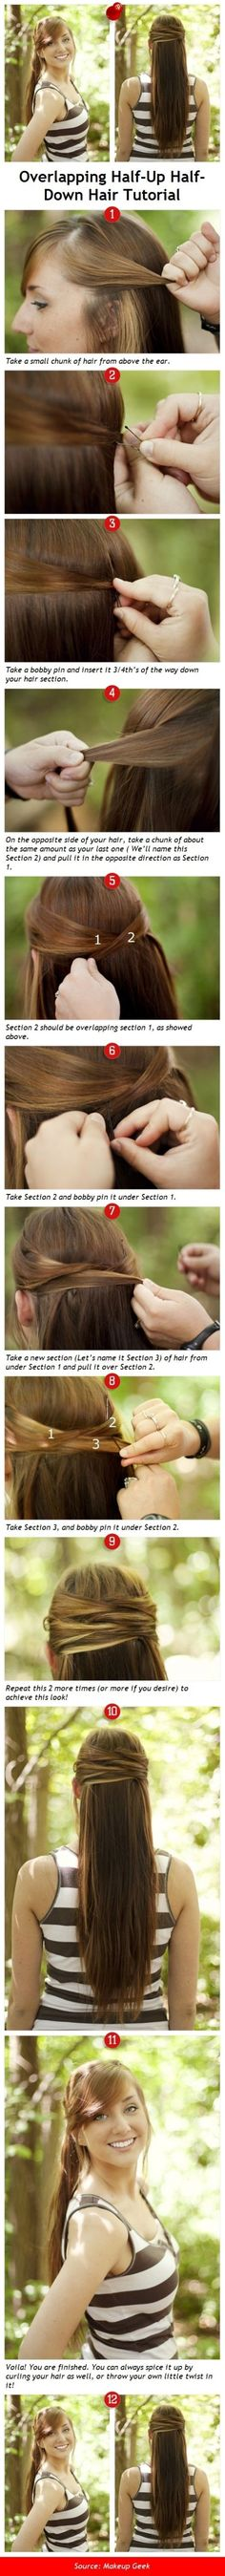 Overlapping Half-Up Half-Down Hair Tutorial | PinTutorials